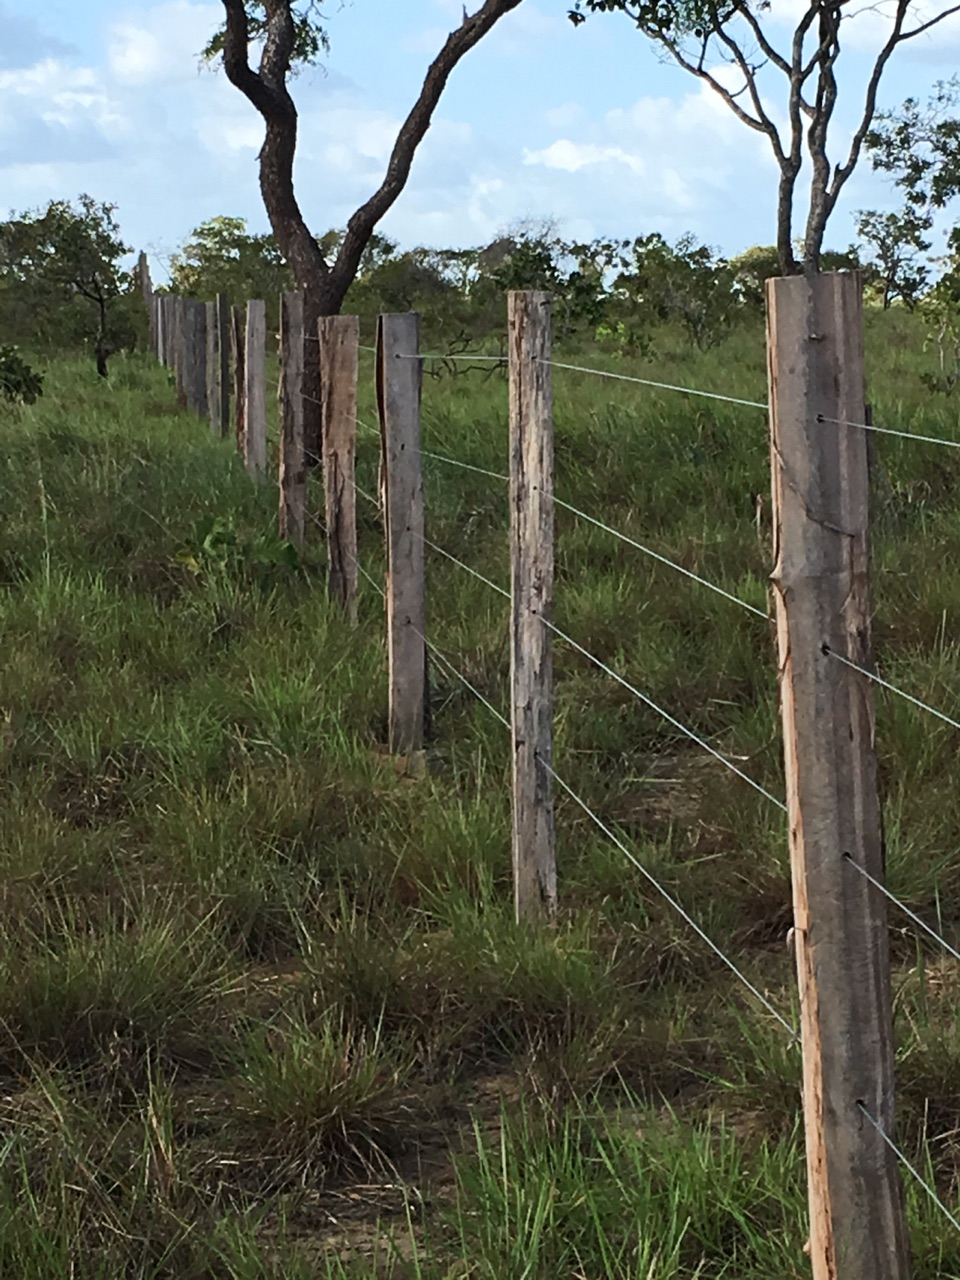 The fence the brethren erected